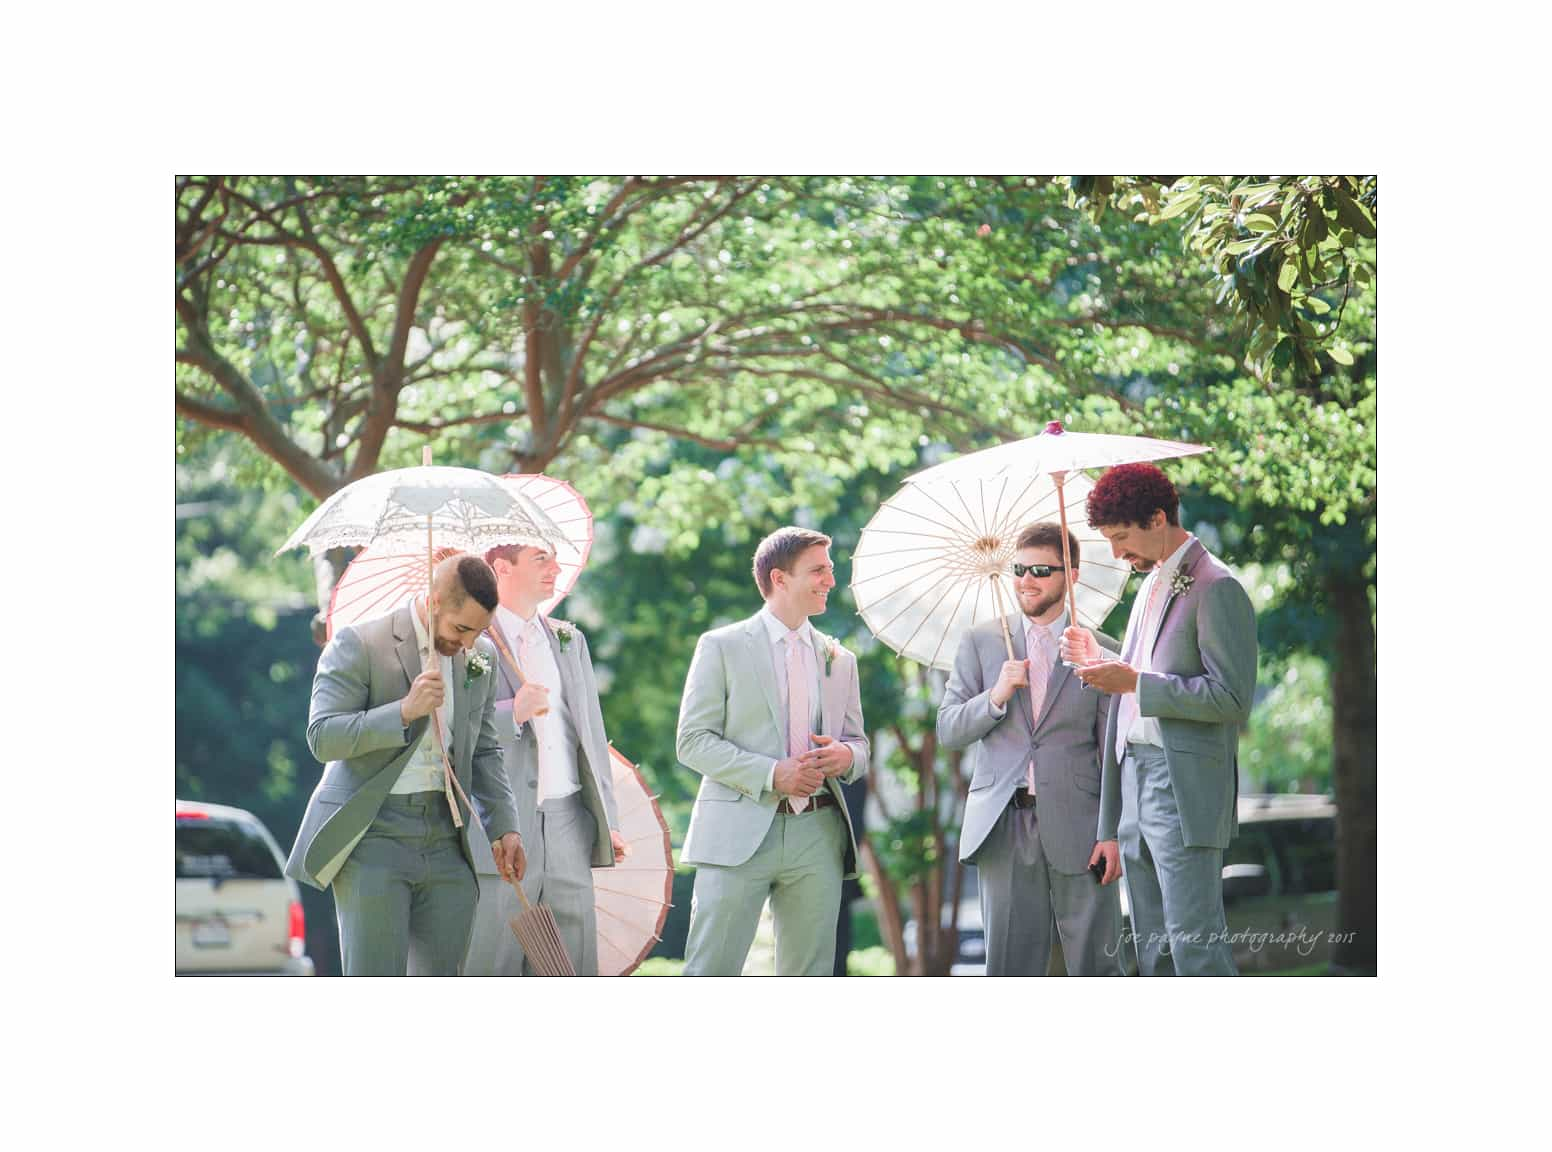 nc wedding photographer groomsmen with parasols